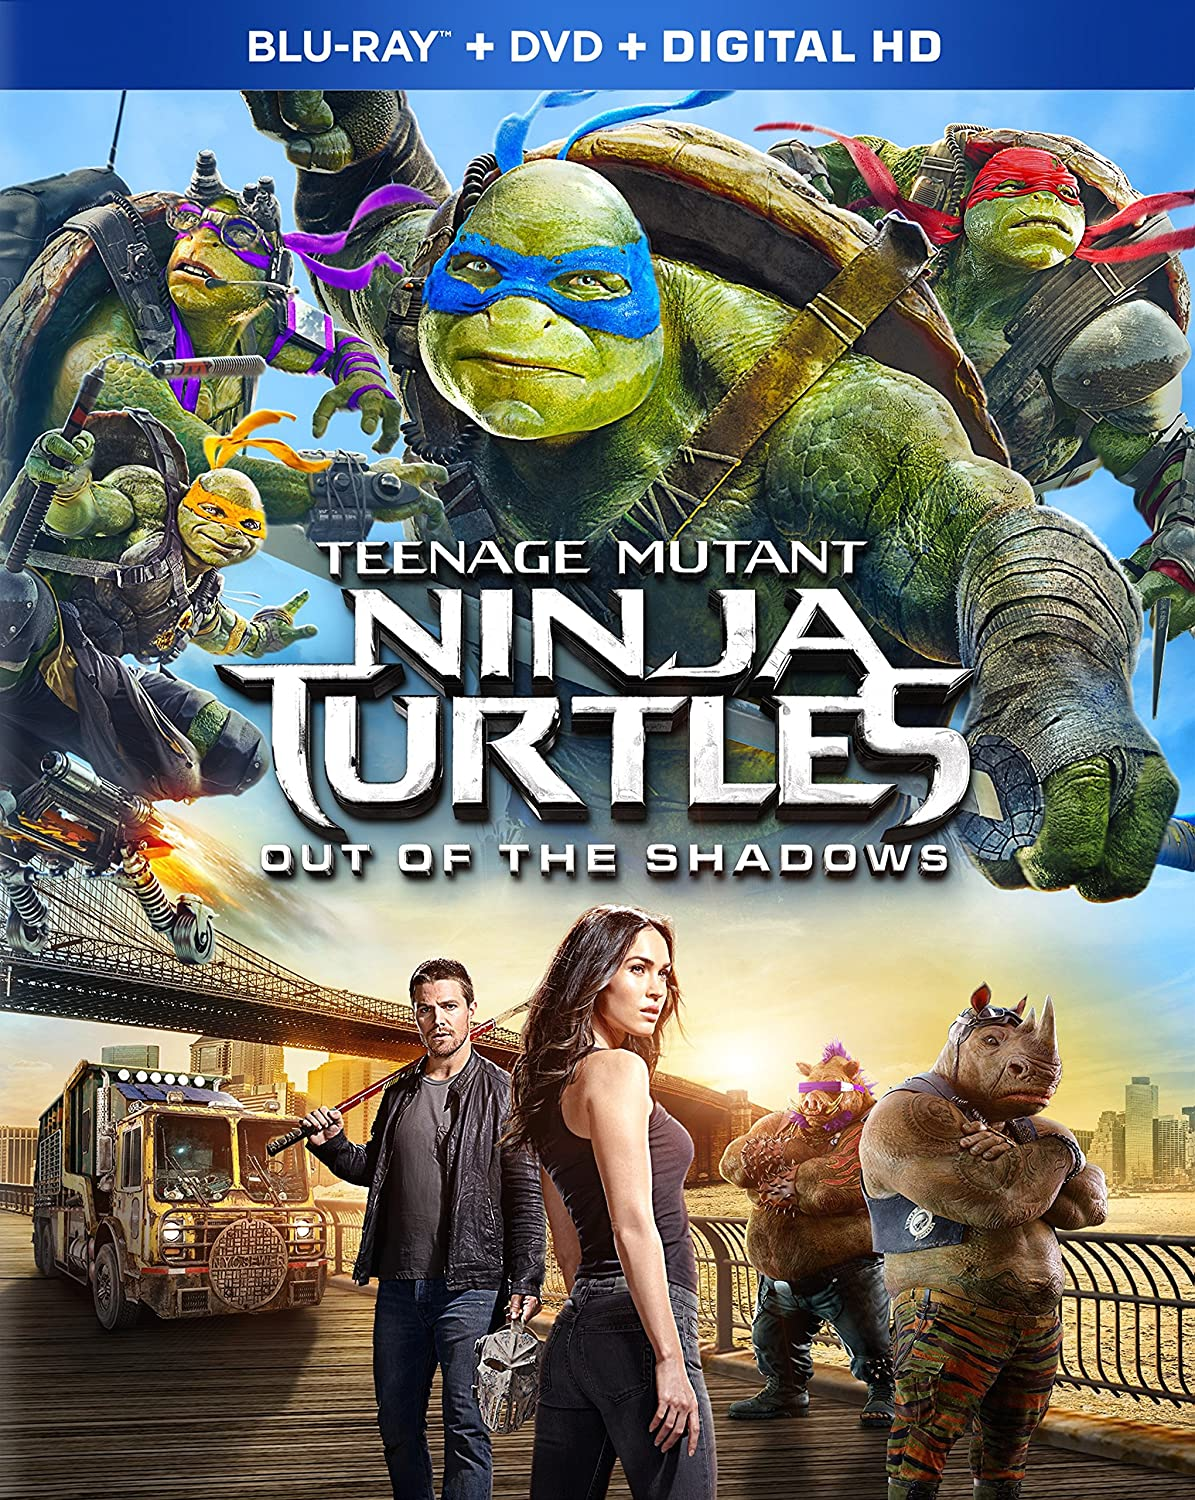 Amazon Com Teenage Mutant Ninja Turtles Out Of The Shadows Blu Ray Megan Fox Will Arnett Tyler Perry Stephen Amell Laura Linney Movies Tv